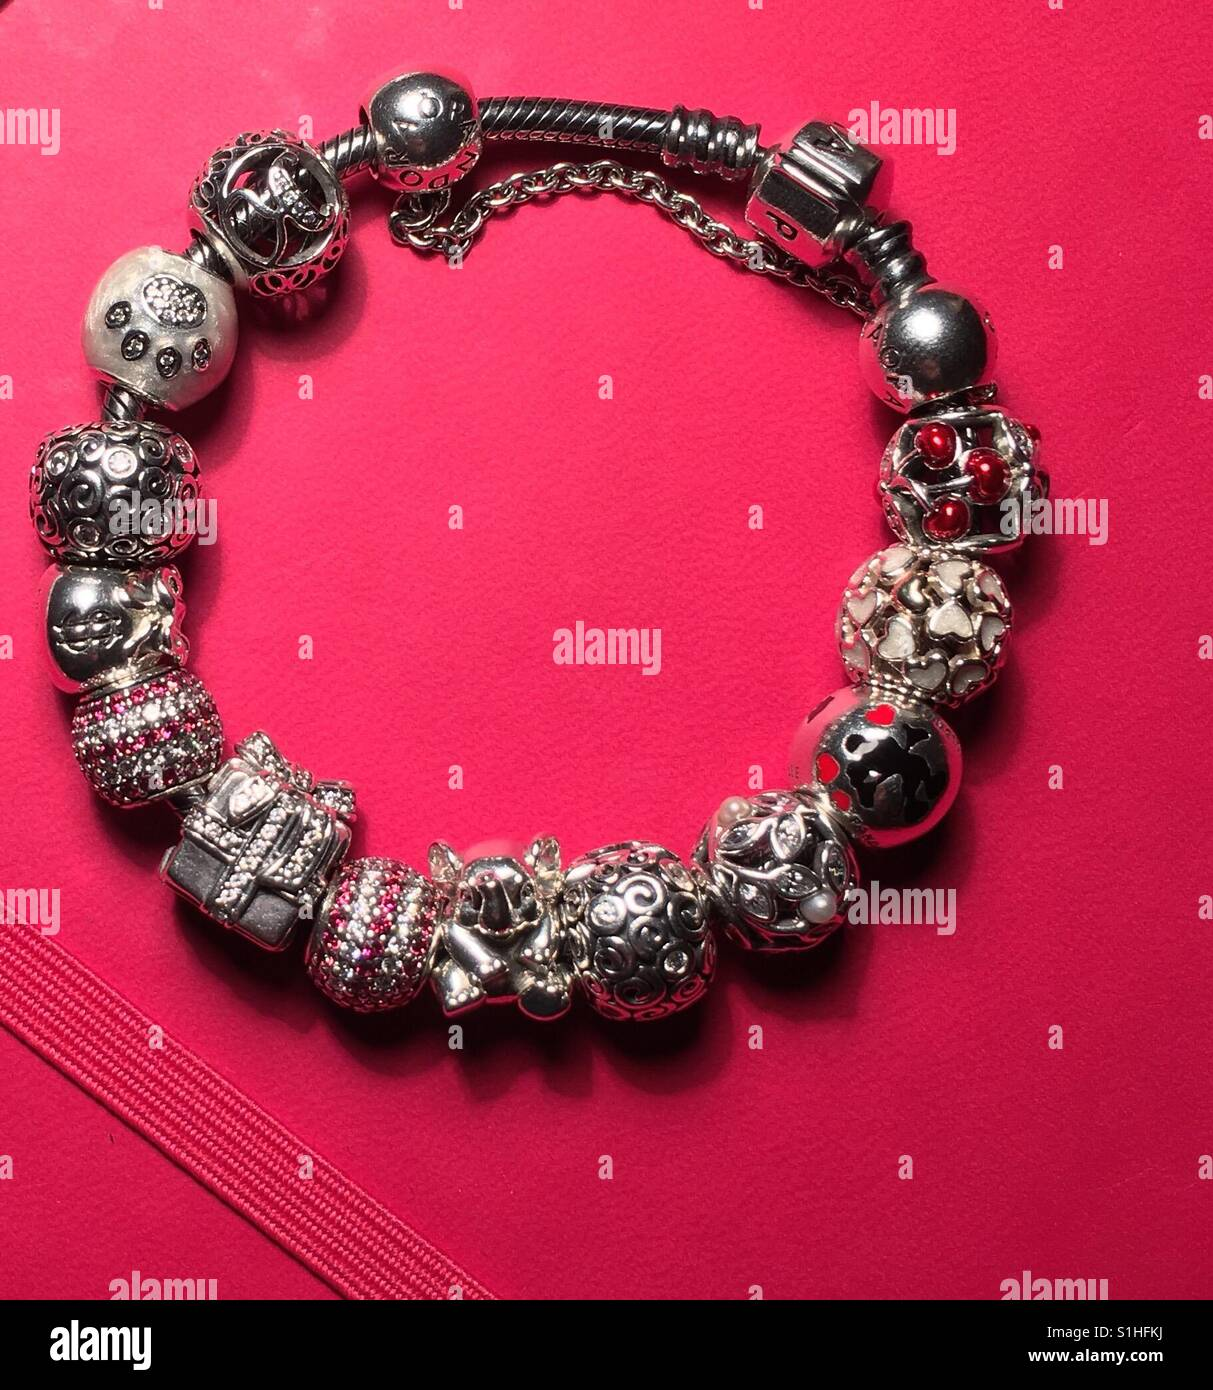 a573cff66 germany pandora charm bracelet at kay jewelers nyc fd539 21ee9